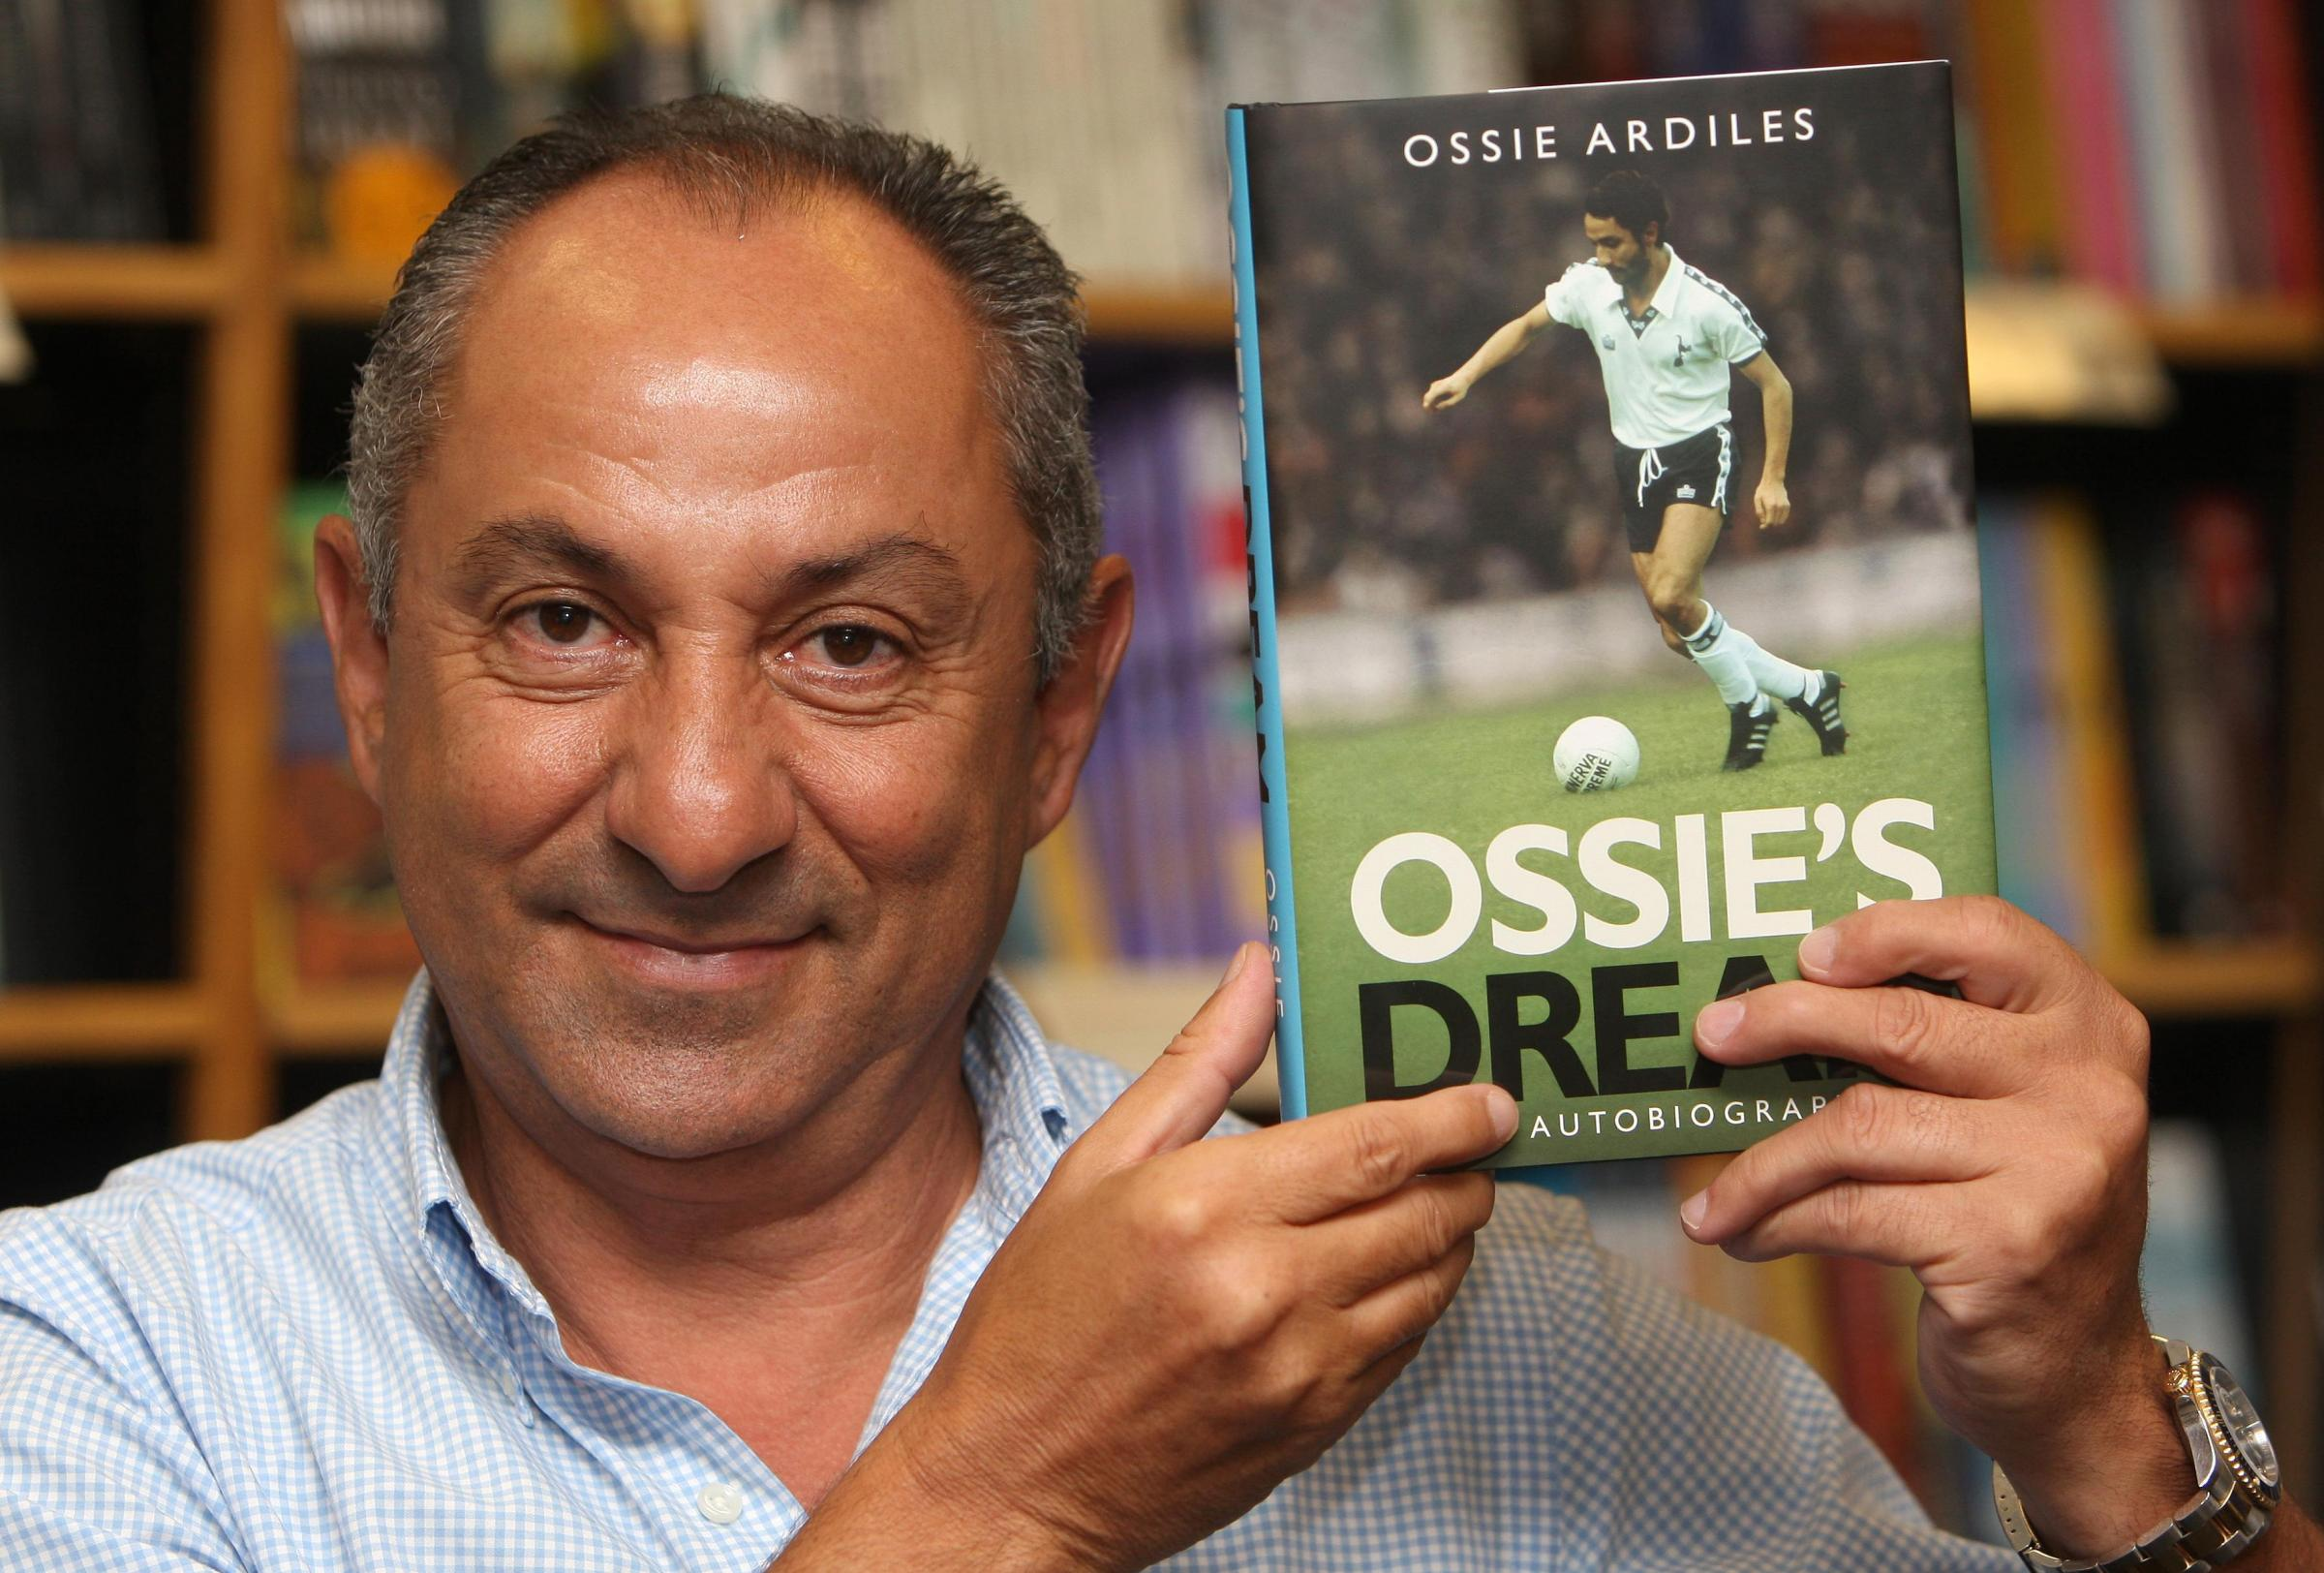 World Cup winner and Tottenham legend to speak at Poole event